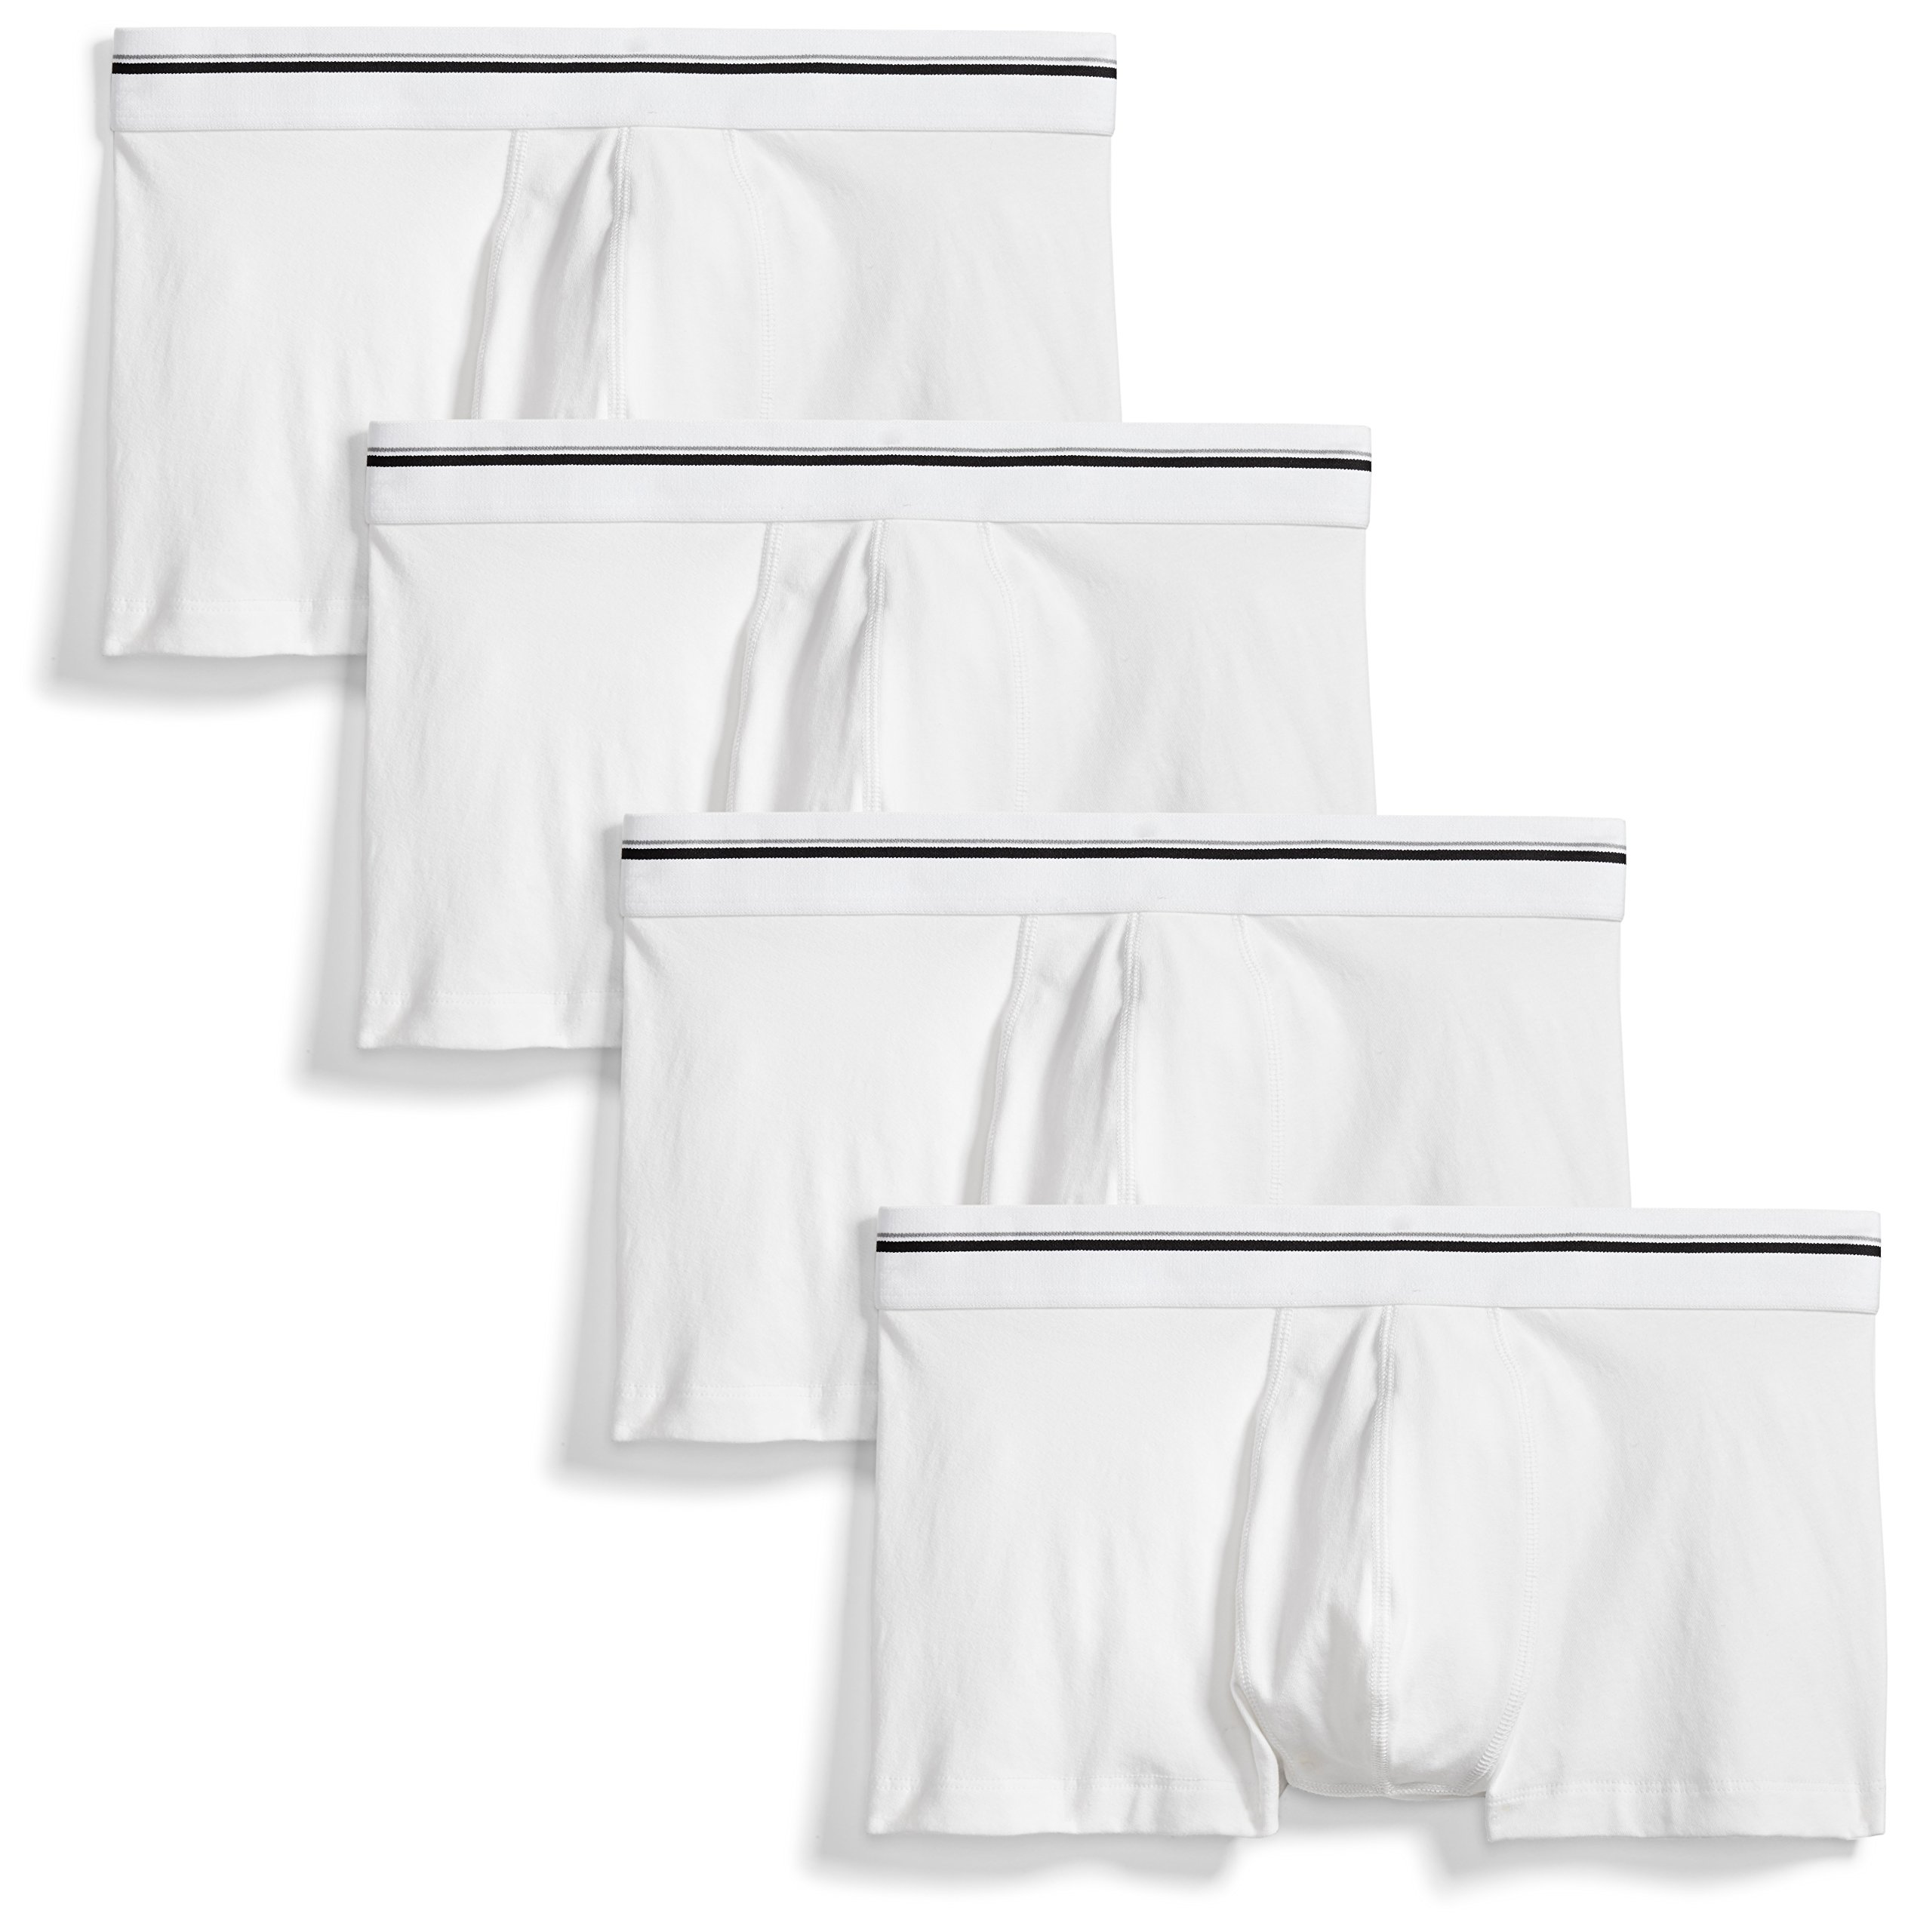 Goodthreads Men's 4-Pack Tag-Free Trunk Underwear, White, Large